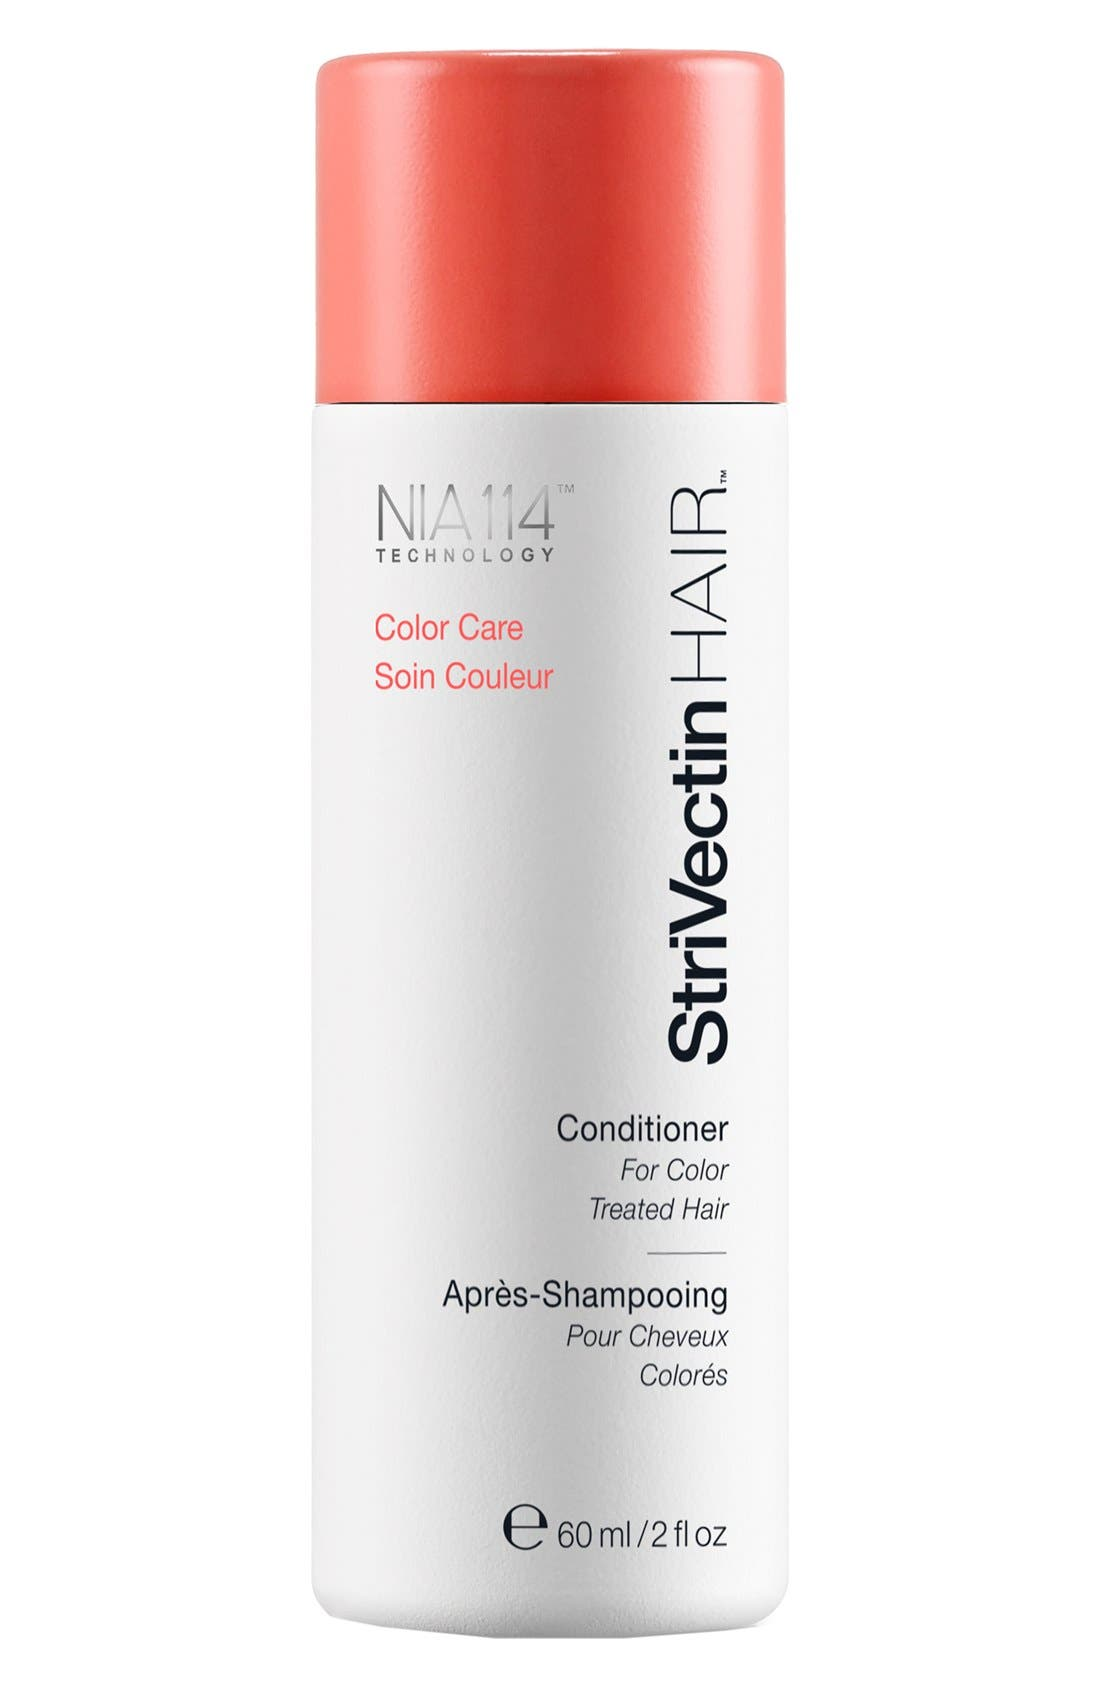 StriVectinHAIR™ 'Color Care' Conditioner for Color Treated Hair